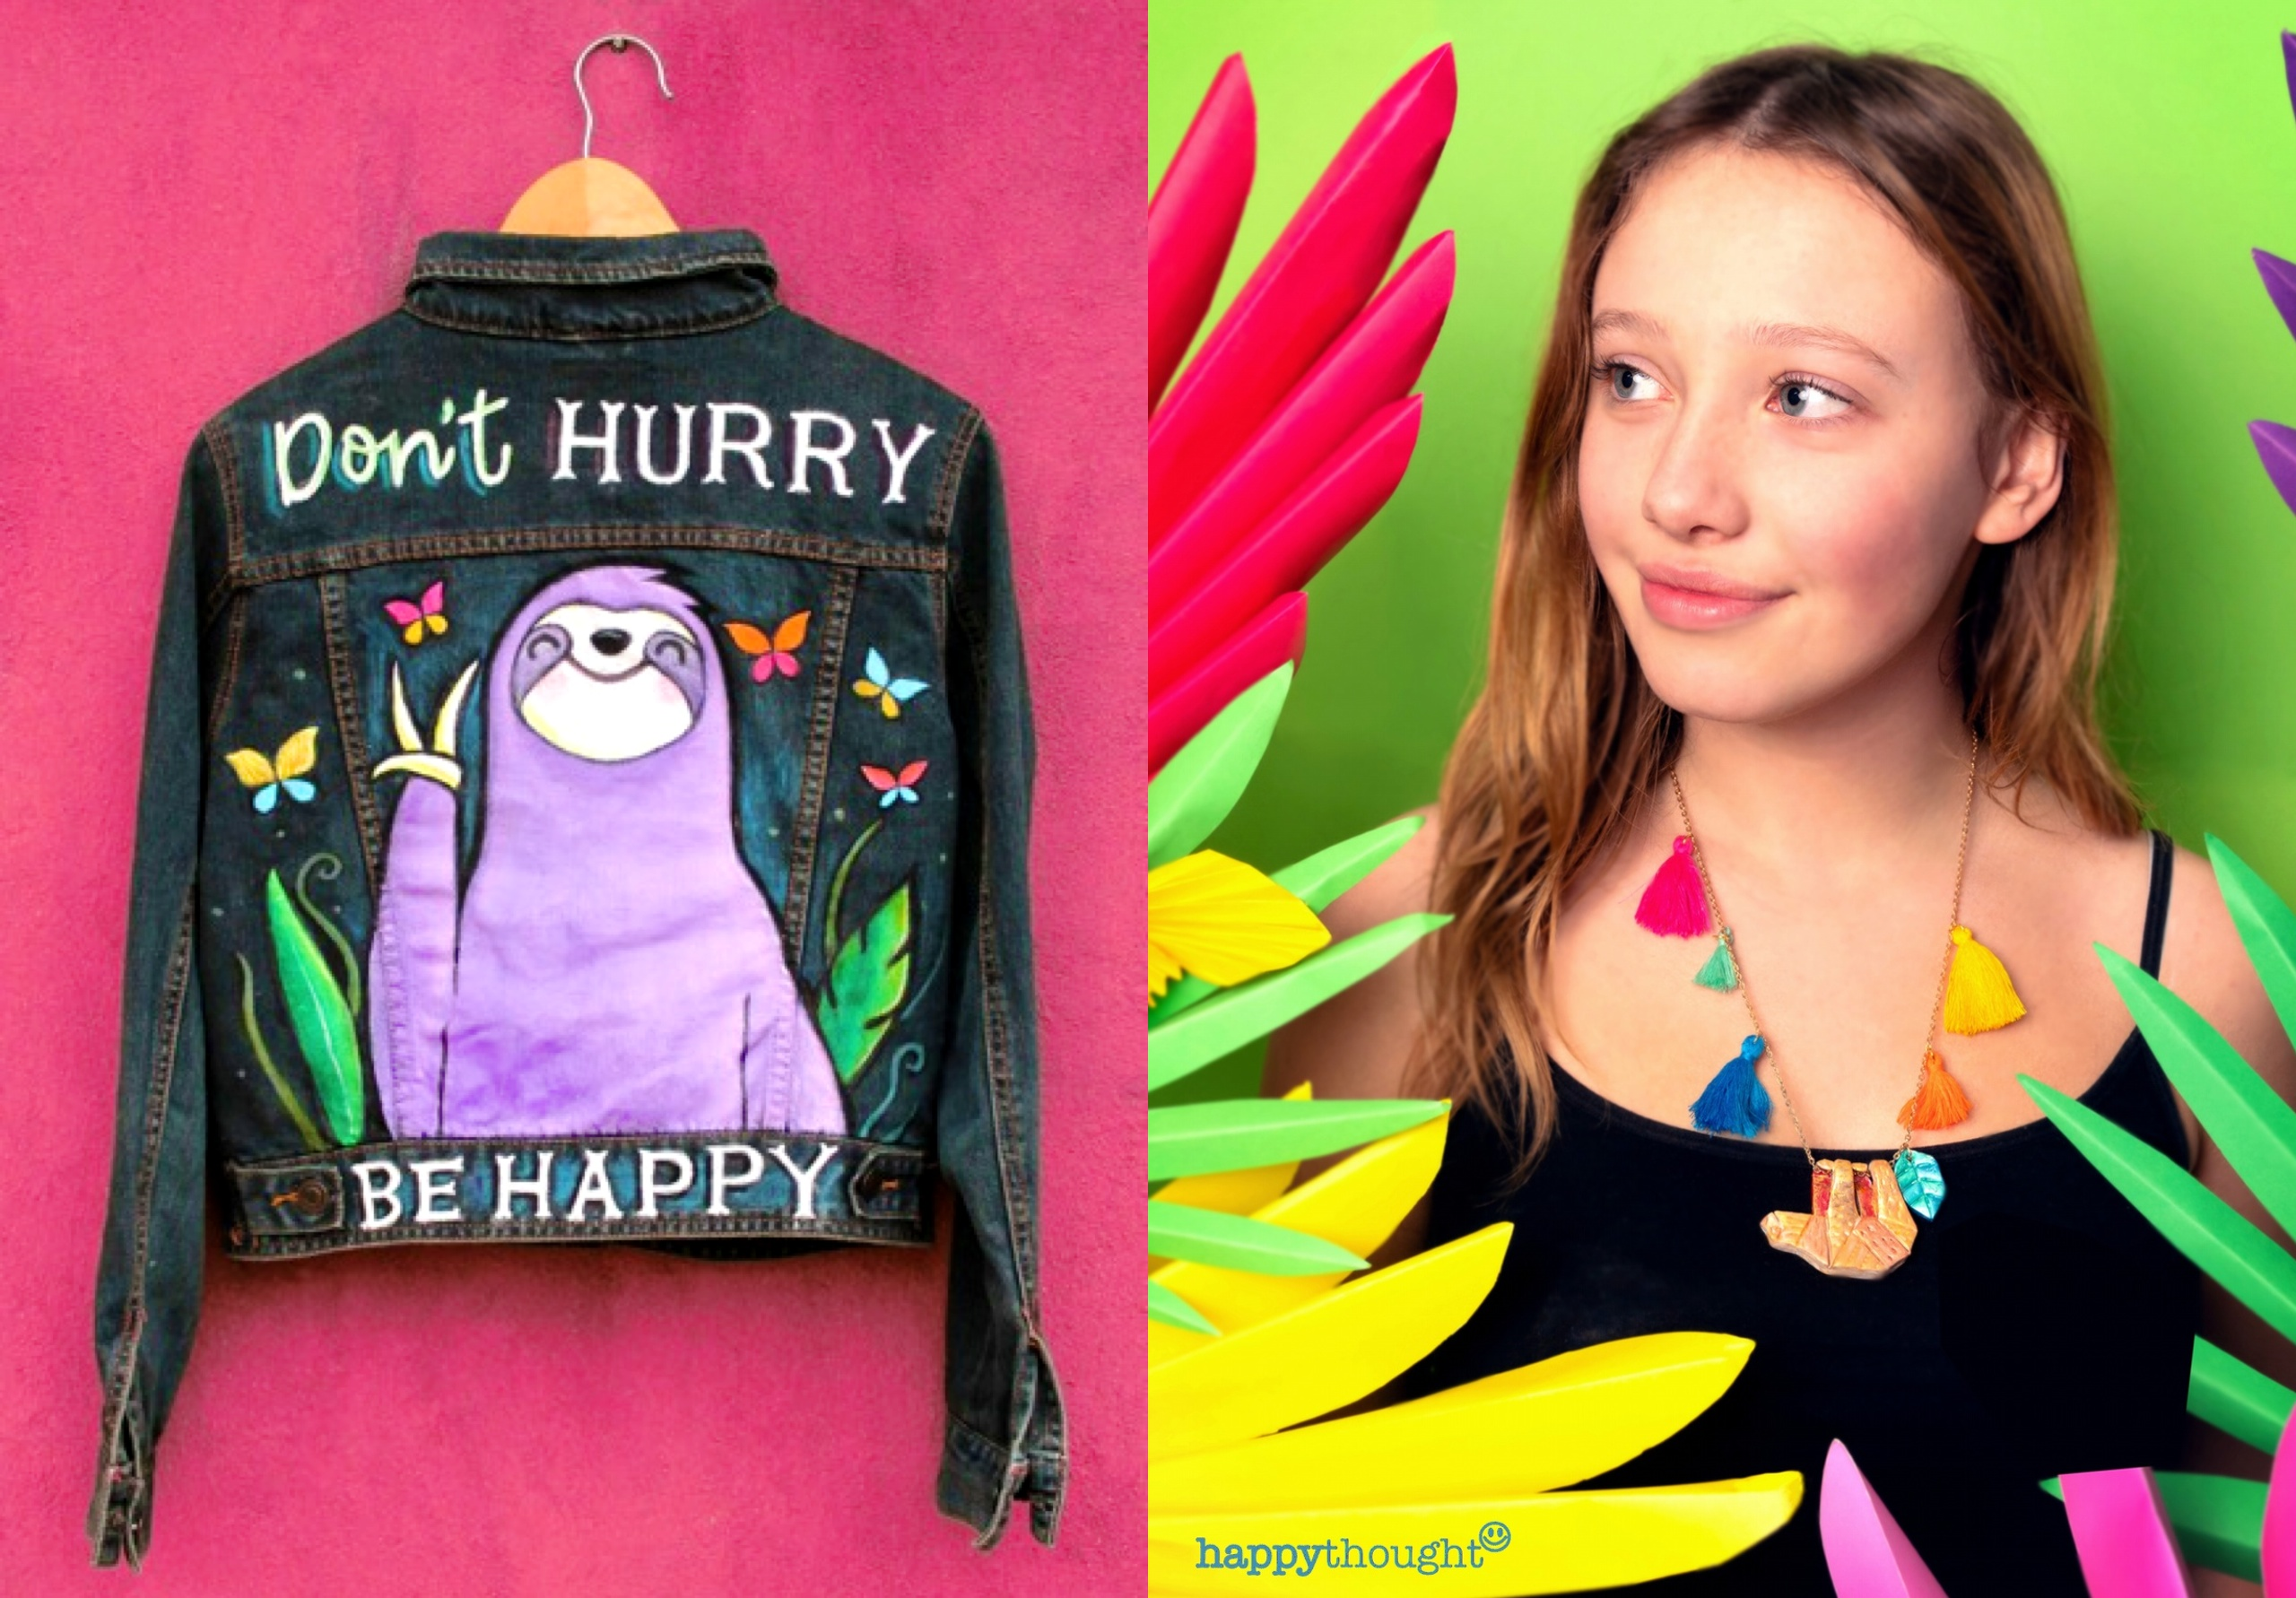 Paint a stunning 'Don't hurry, be happy' graphic on to an old denim jacket. Necklace craft ideas too!